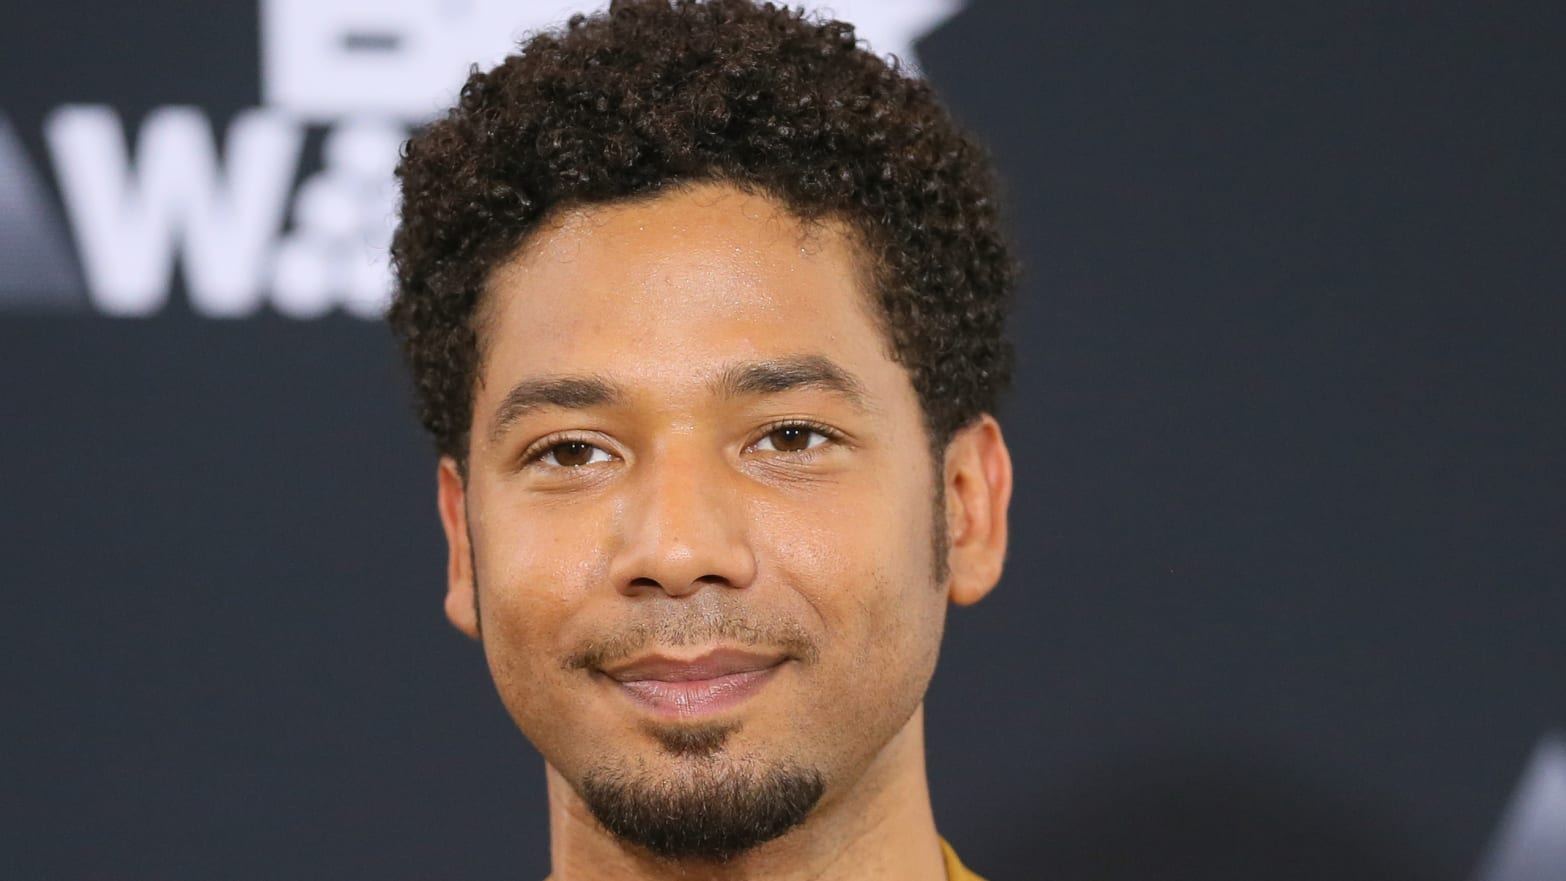 Jussie Smollett Case: Police Release 'Persons of Interest' Without Charges